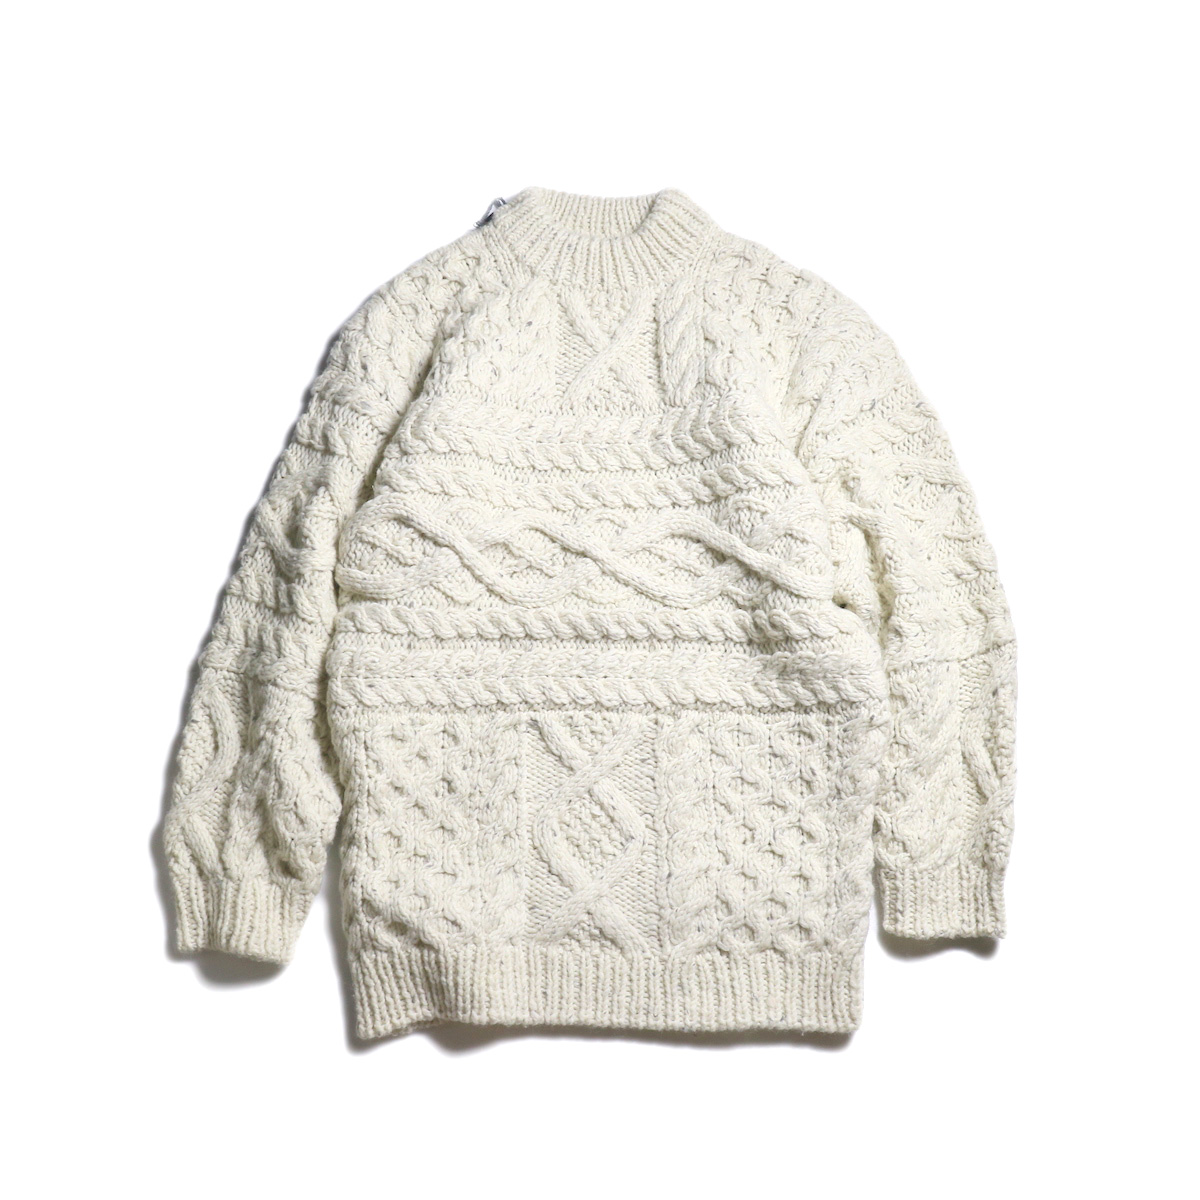 UNUSED Ladie's / US1703 Hand Knit Cable Sweater (Off White)